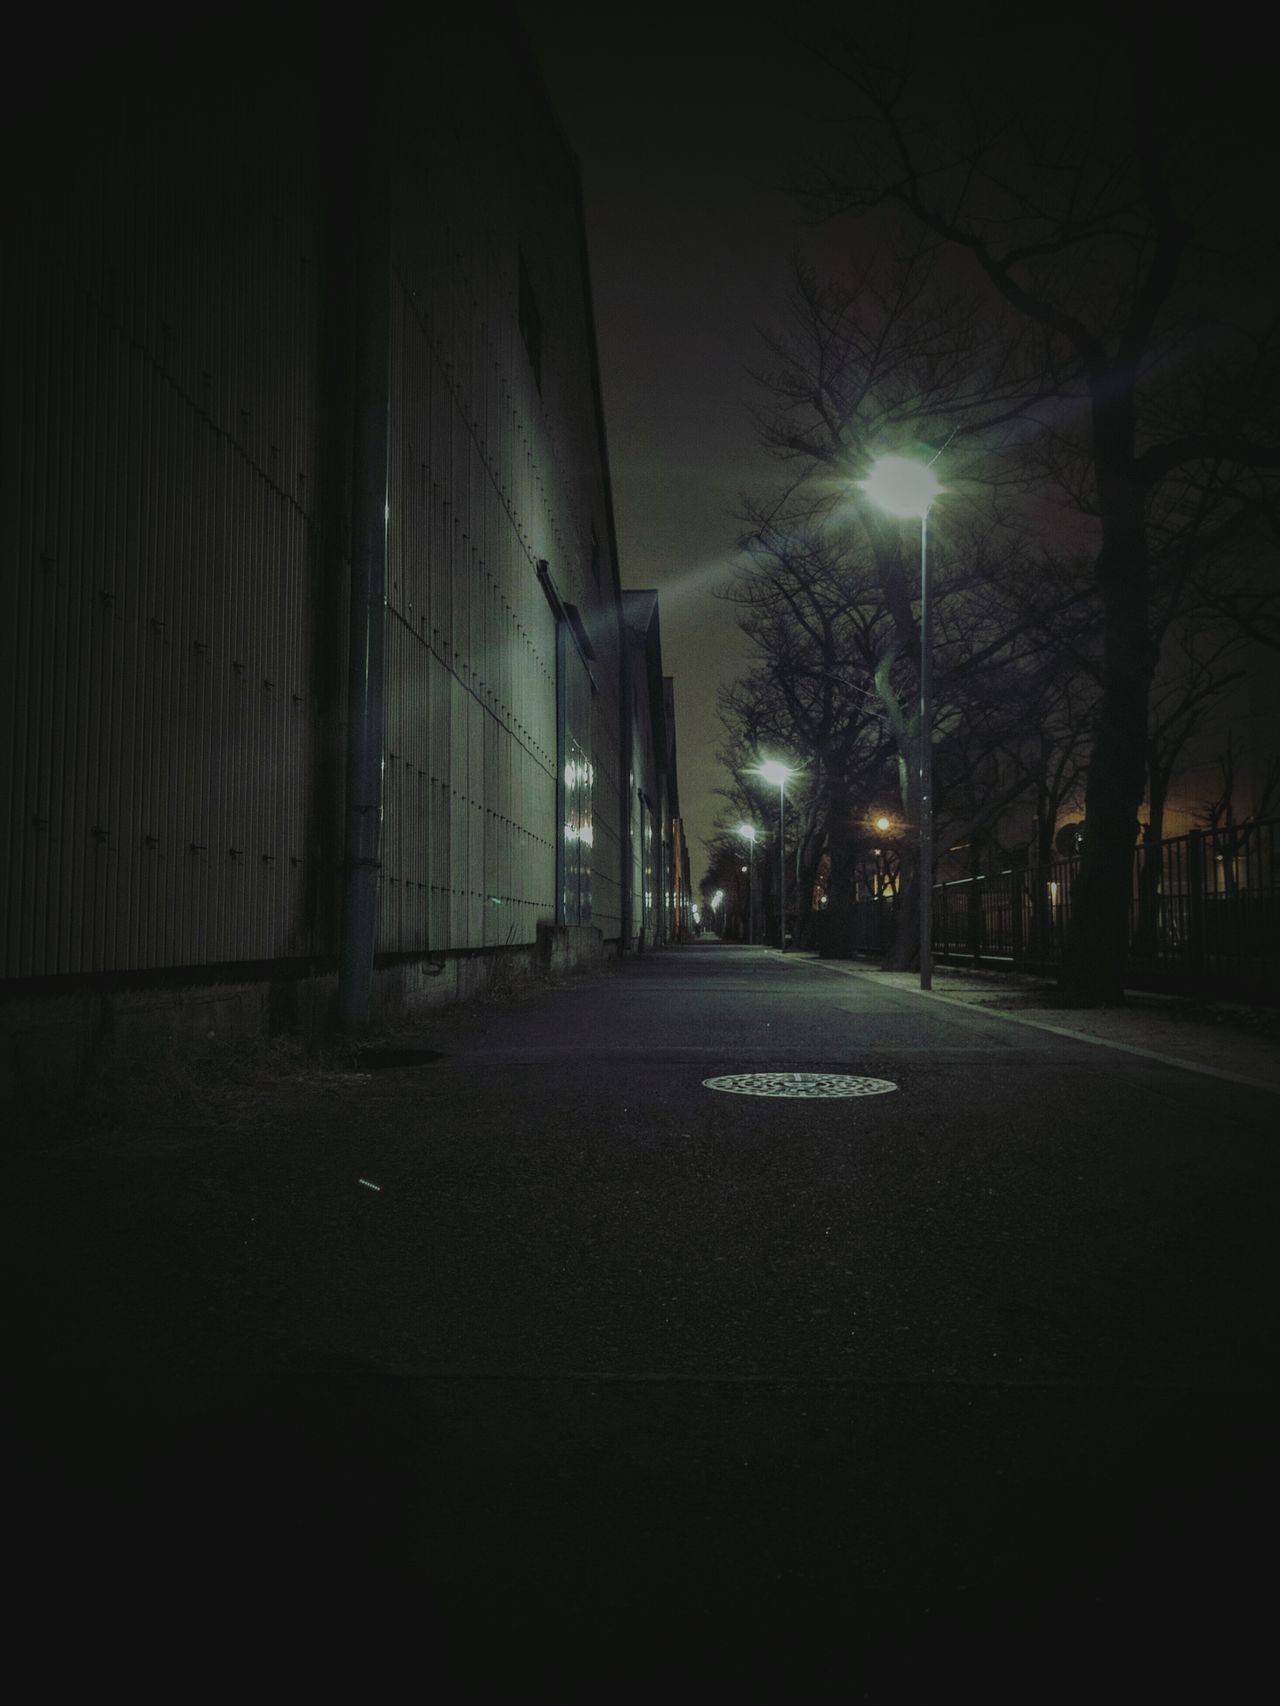 Warehouse Street Night Jog Night Photography Light And Shadow Night View Tree_collection  Scenery Toniht